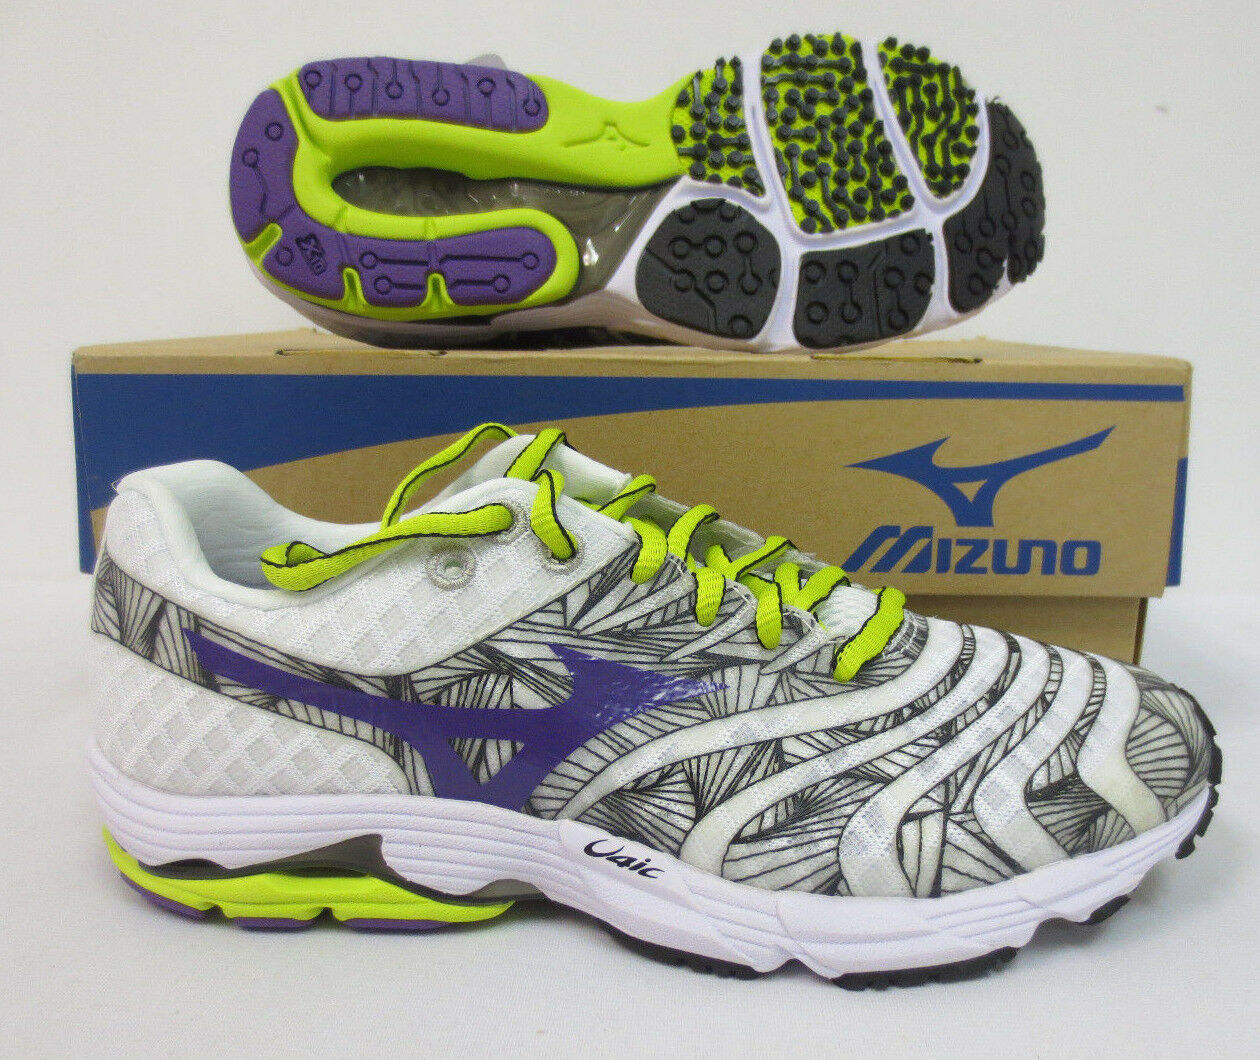 MIZUNO WAVE SAYONARA WOMENS SHOES SIZE 7 RUNNING WORKOUT JOGGING GYM NEW CUTE